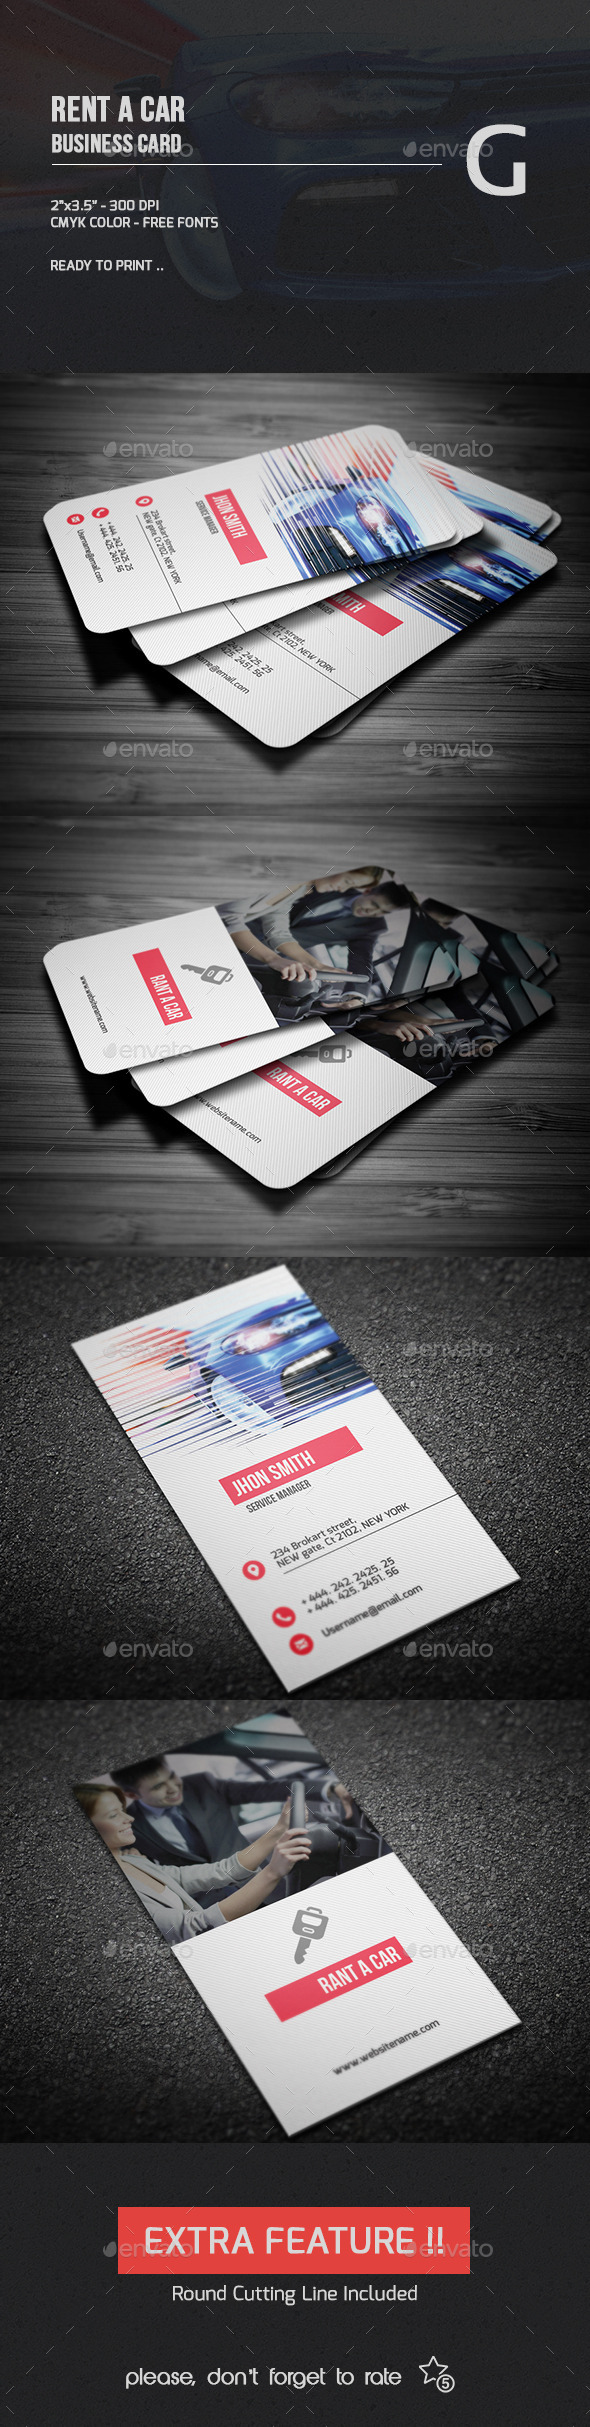 GraphicRiver Rent A Car Business Card 9819185